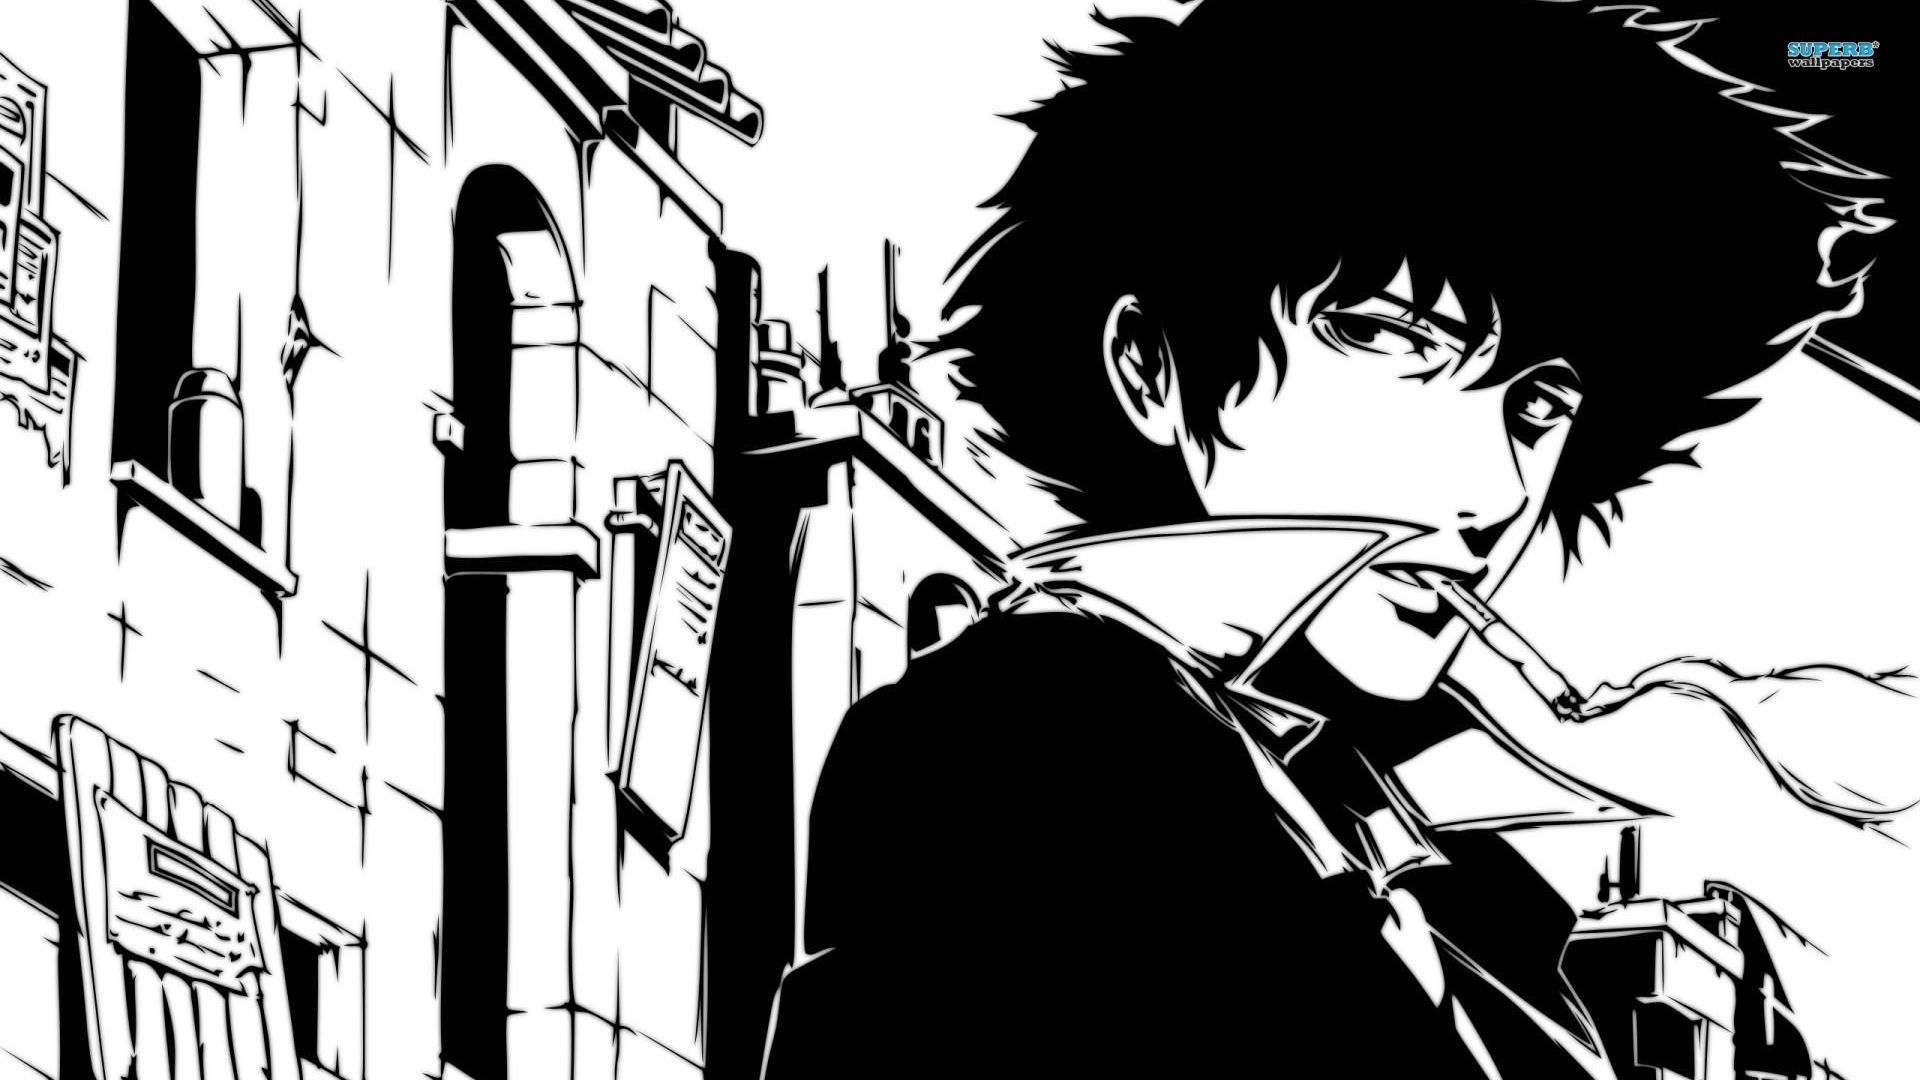 Cowboy Bebop Anime Black And White Spike wallpaper